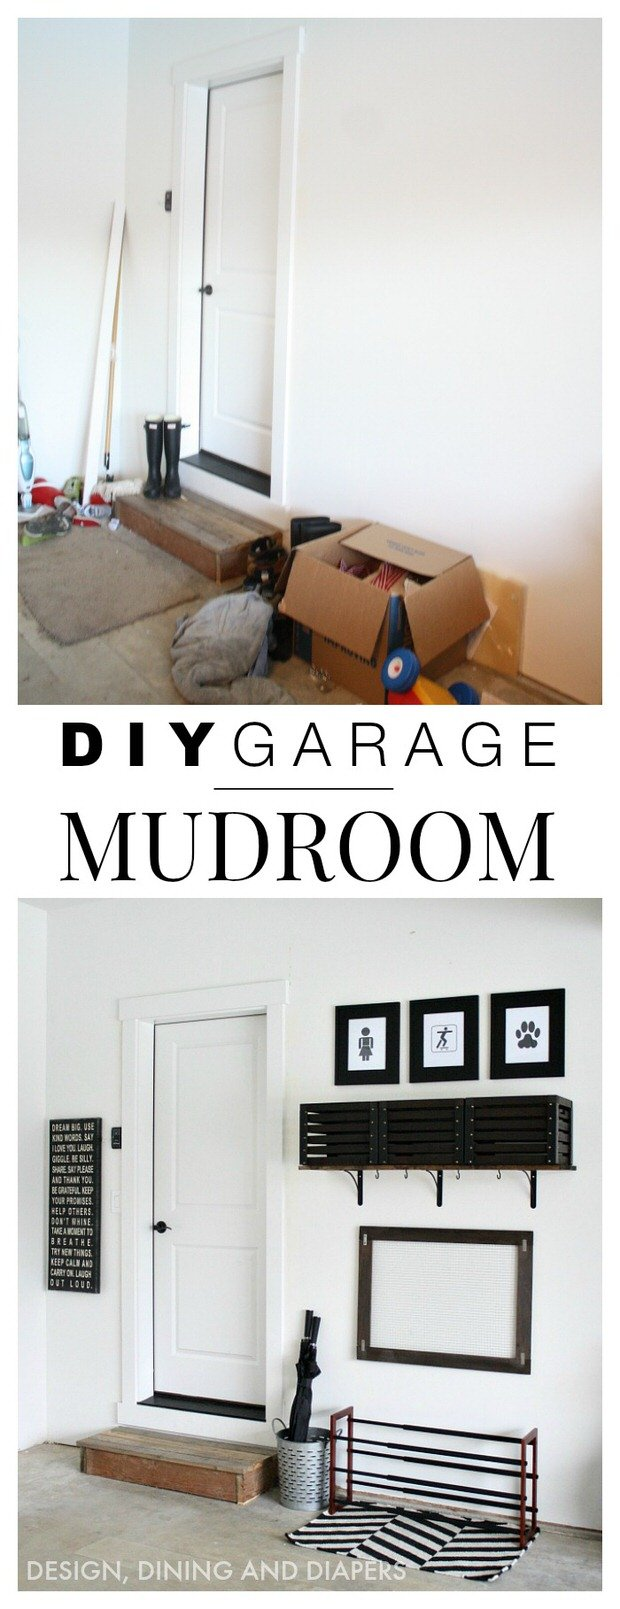 Garage makeover projects decorating your small space for Garage mudroom designs